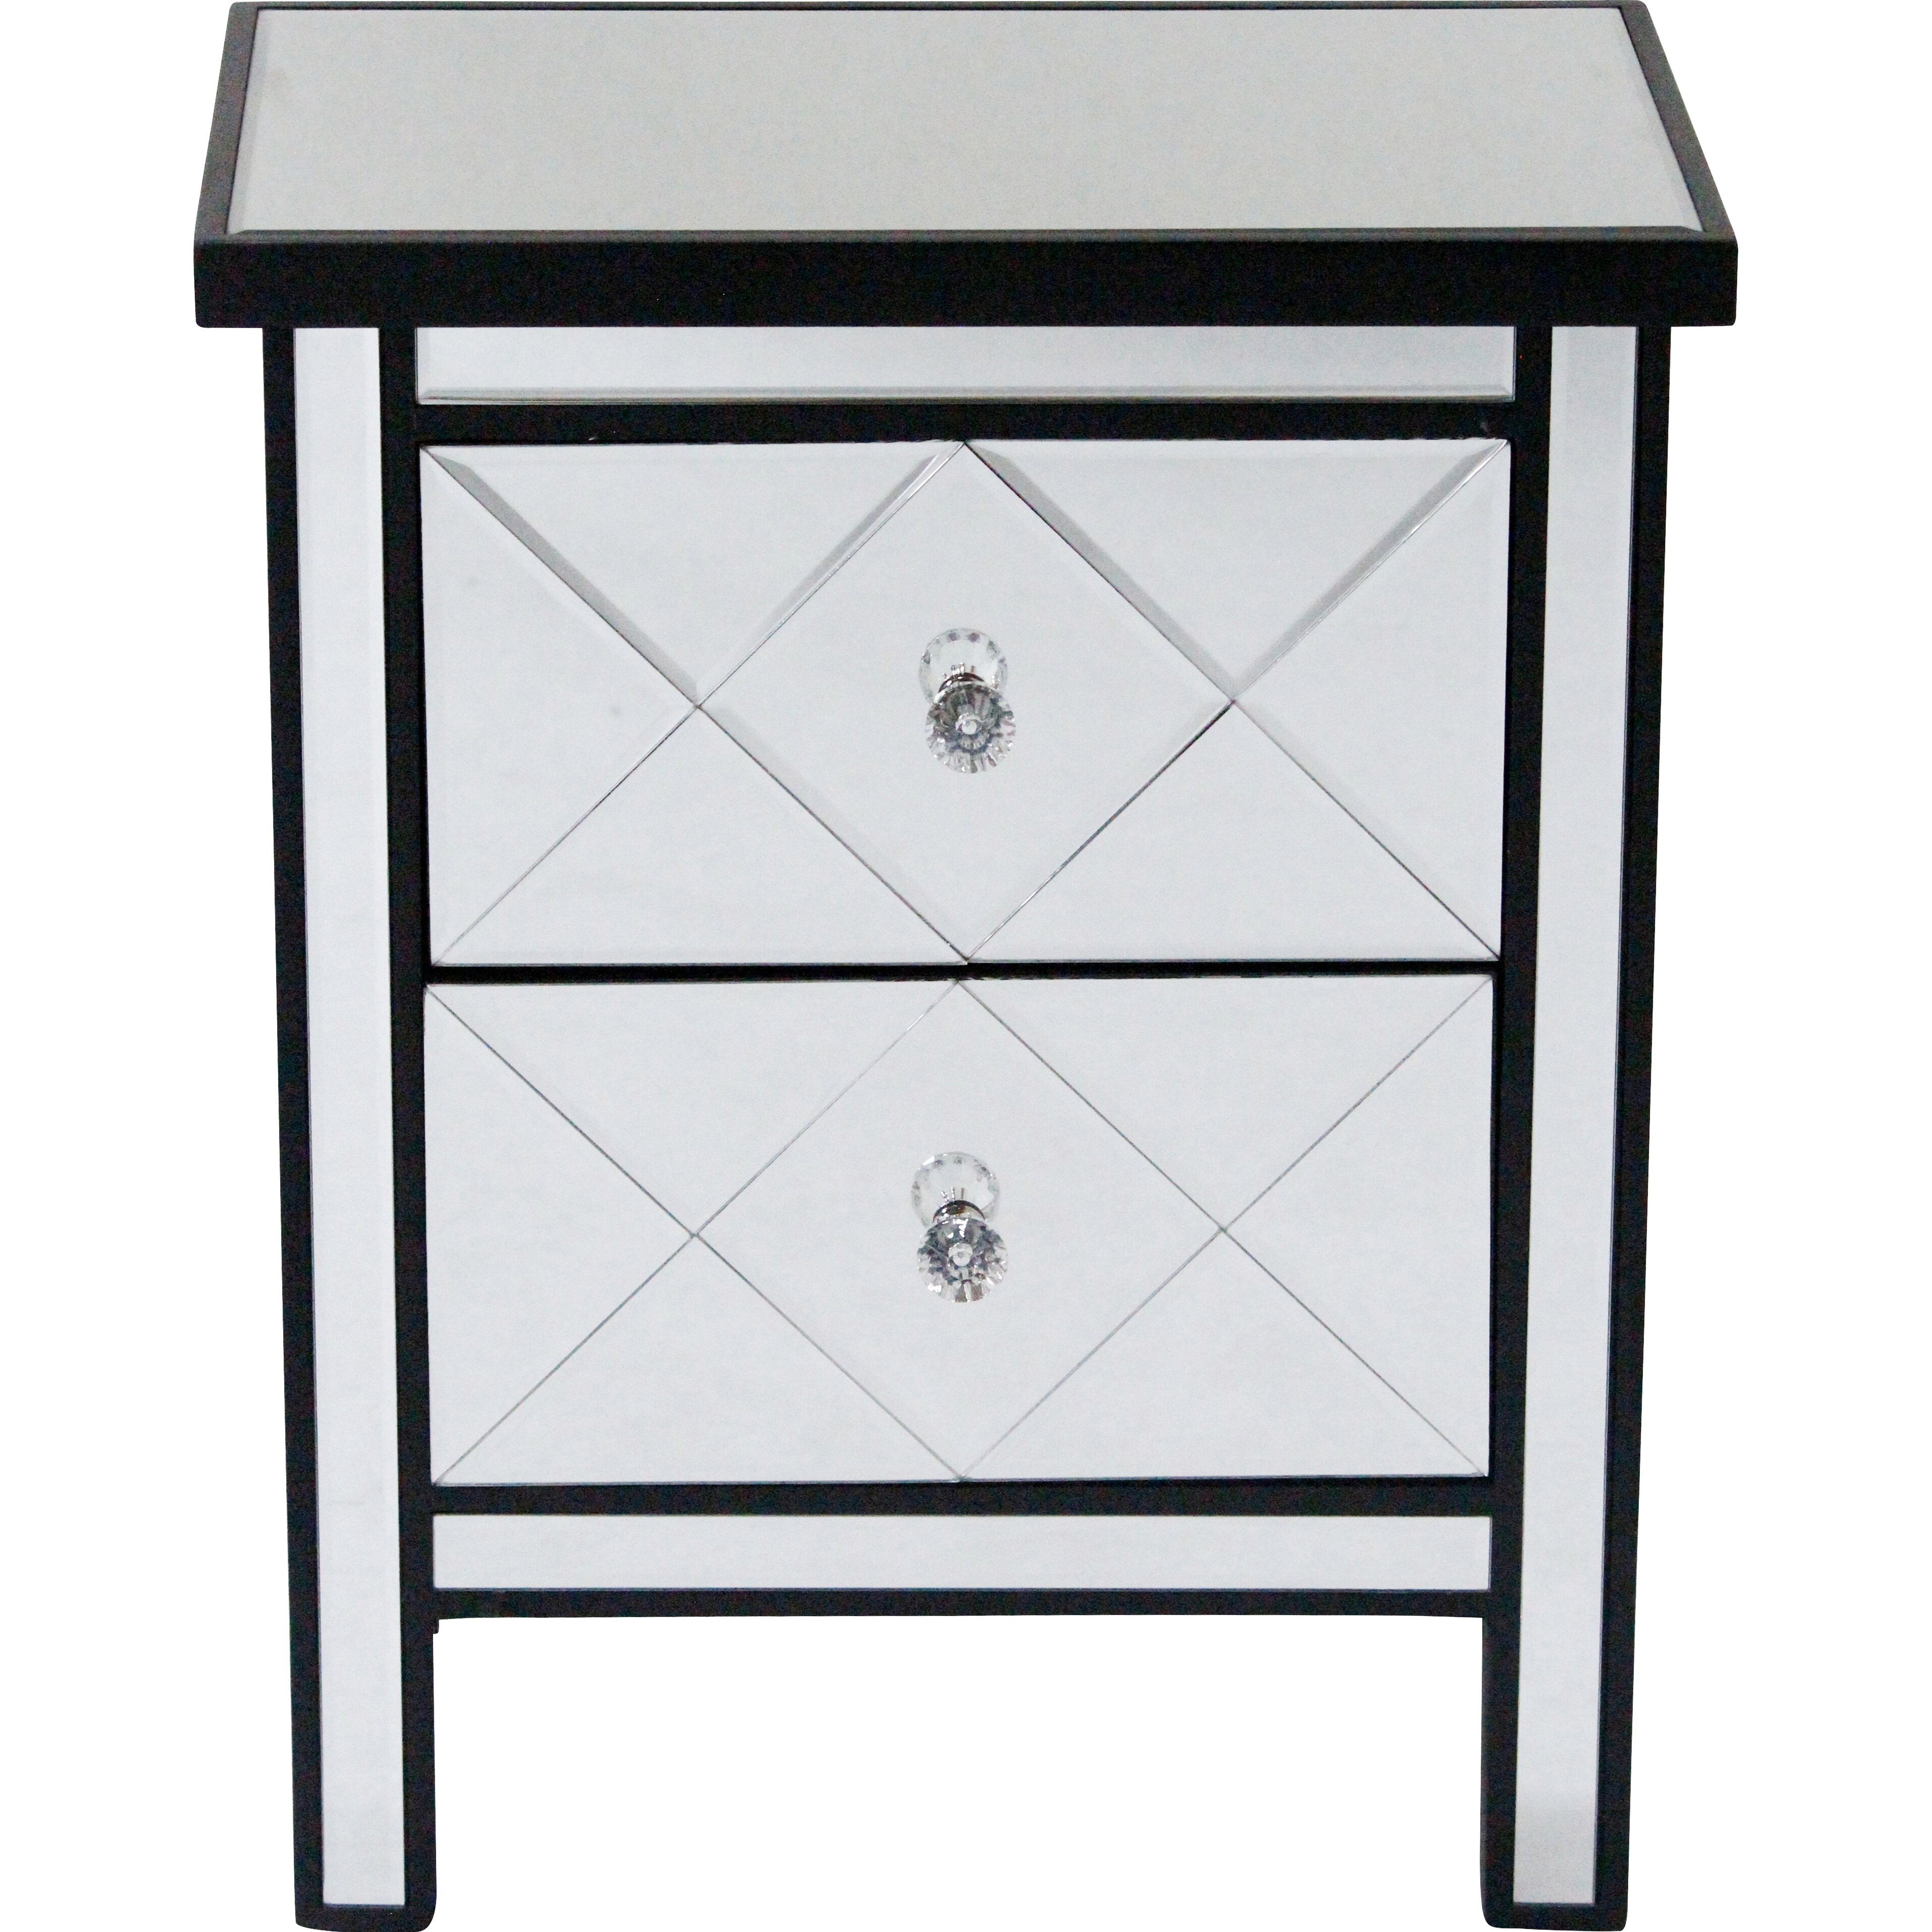 Superb img of Heather Ann Wood Cabinet with Mirror Wayfair.ca with #16181A color and 3828x3828 pixels